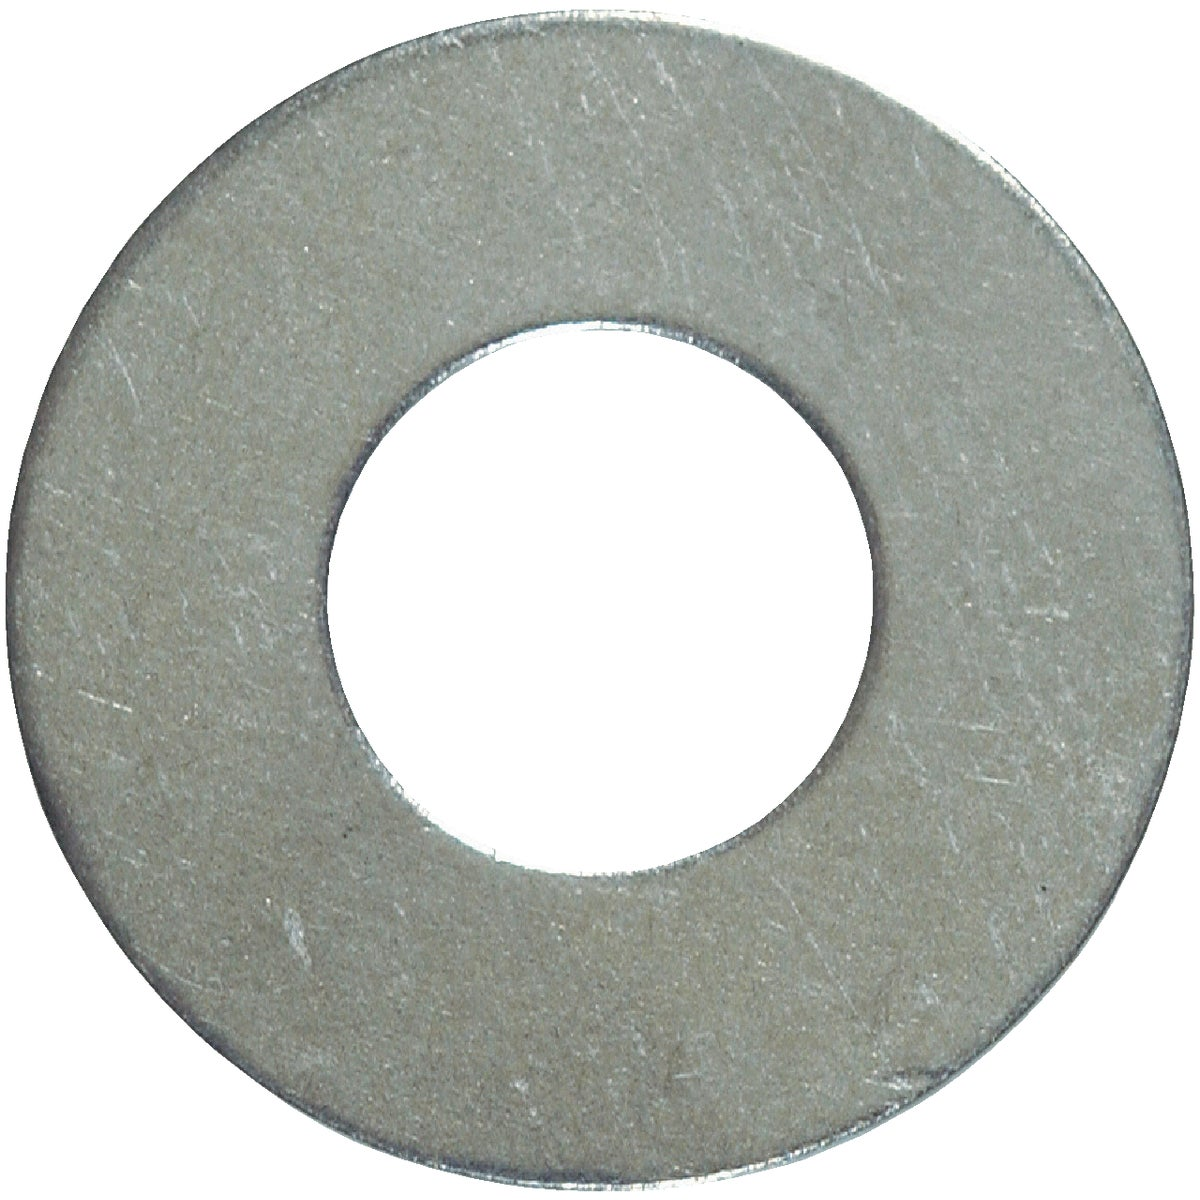 "1/4"" SS FLAT WASHER - 830502 by Hillman Fastener"